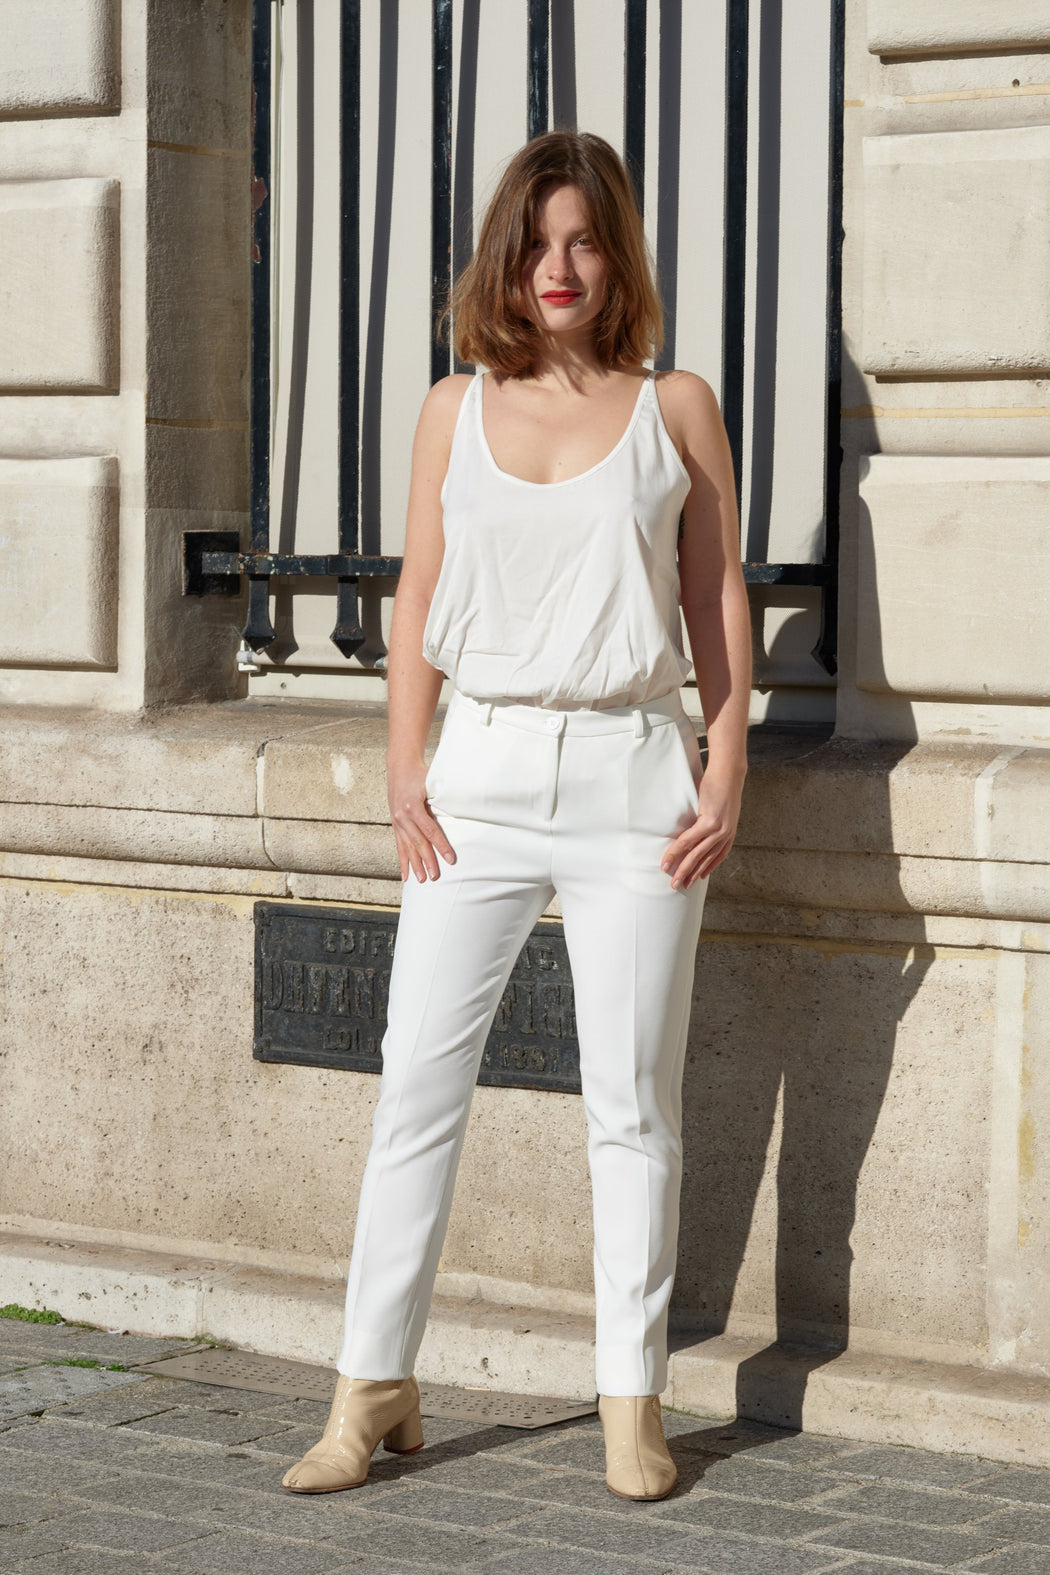 IVORY GEORGE PANTS - Admitted